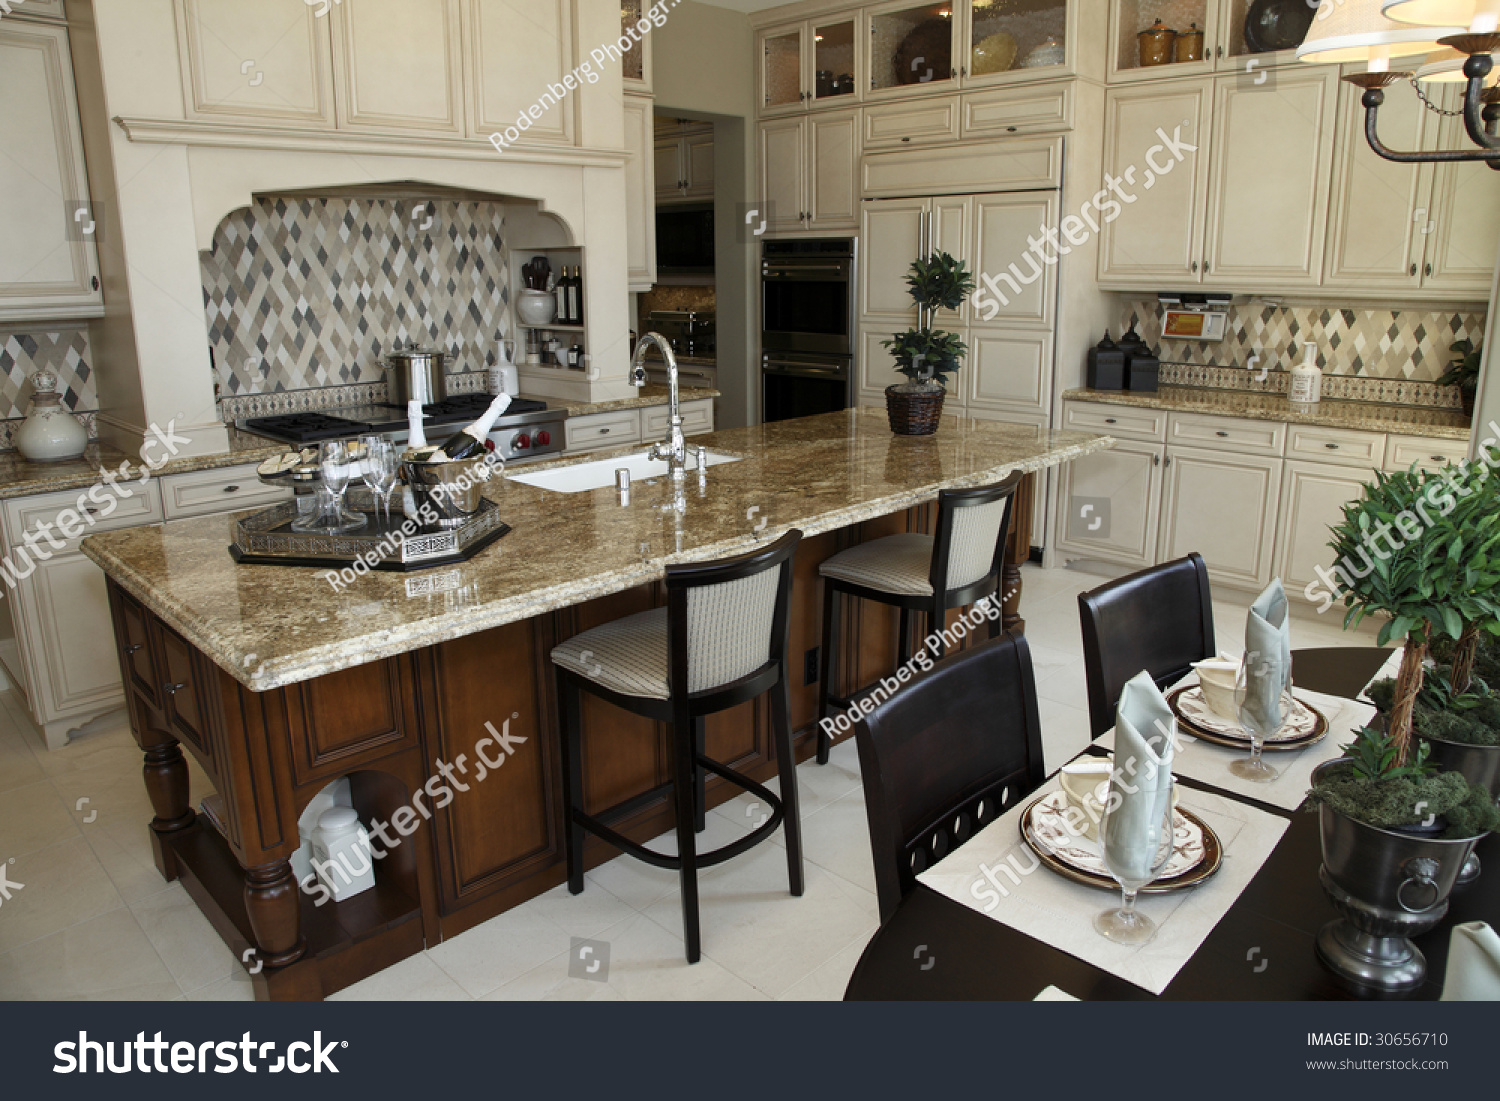 Kitchen breakfast table modern decor stock photo 30656710 shutterstock - Modern kitchen table centerpieces ...